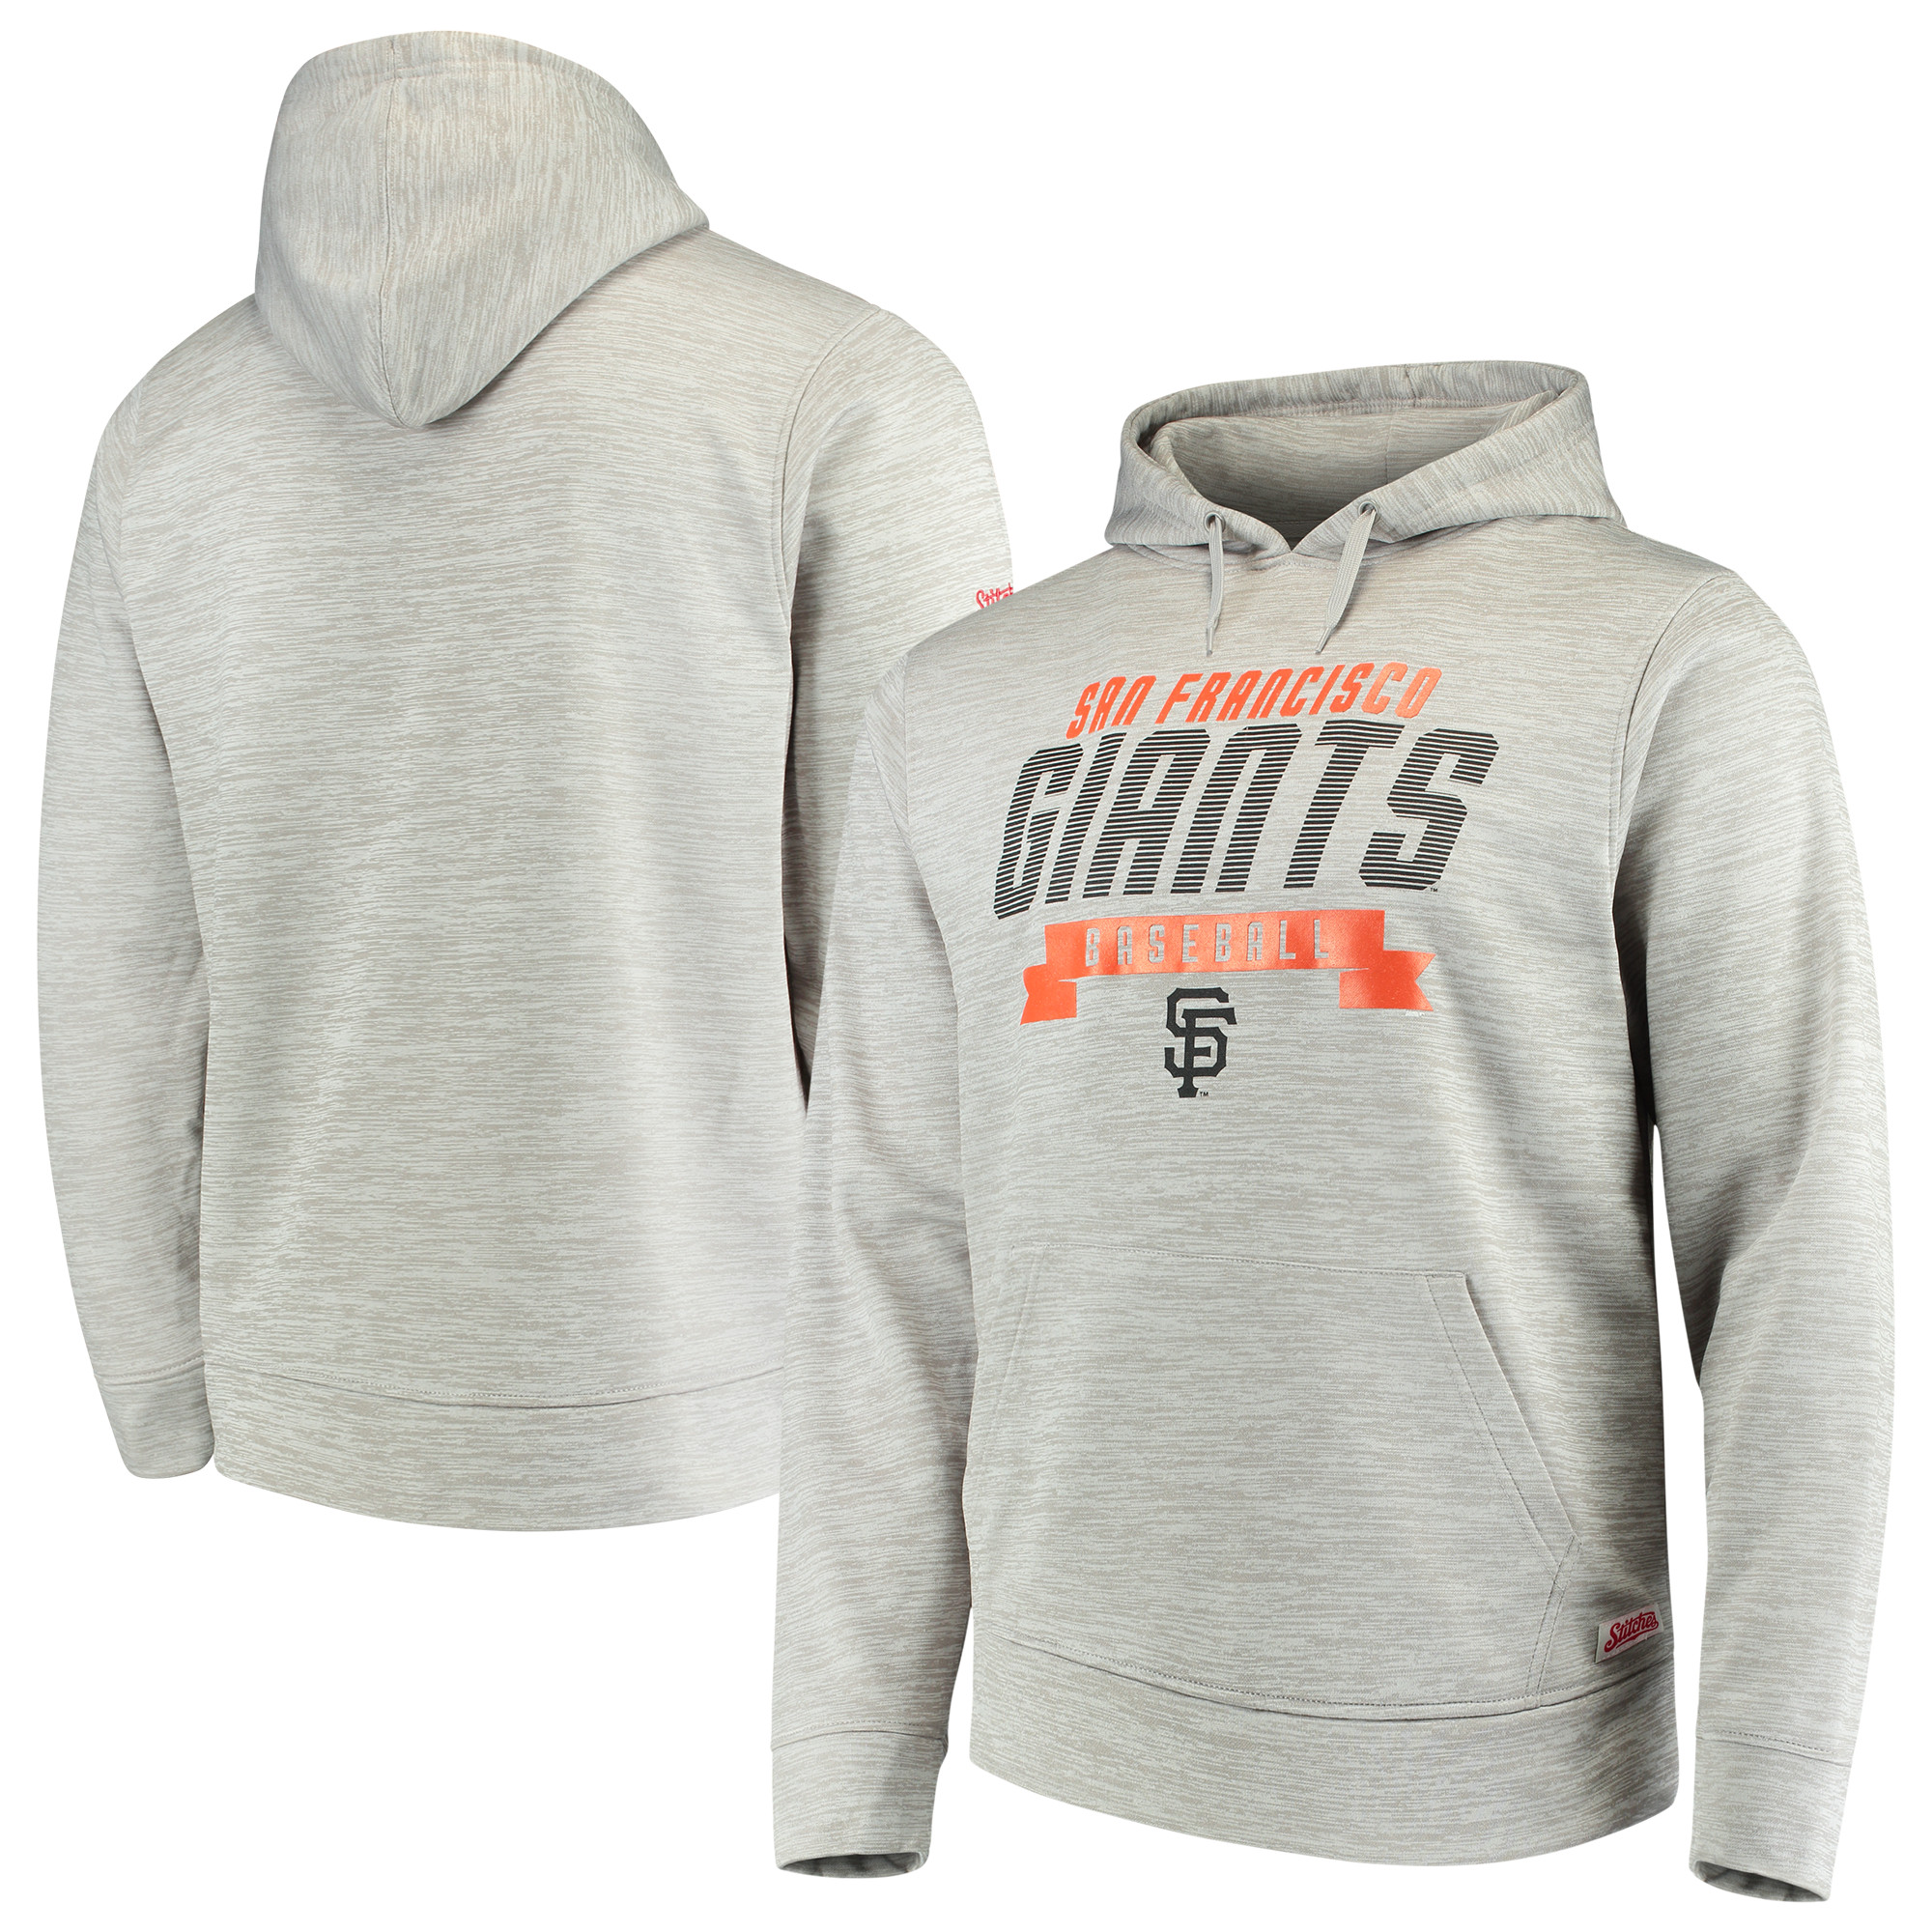 San Francisco Giants Stitches Poly Pullover Hoodie - Heathered Gray